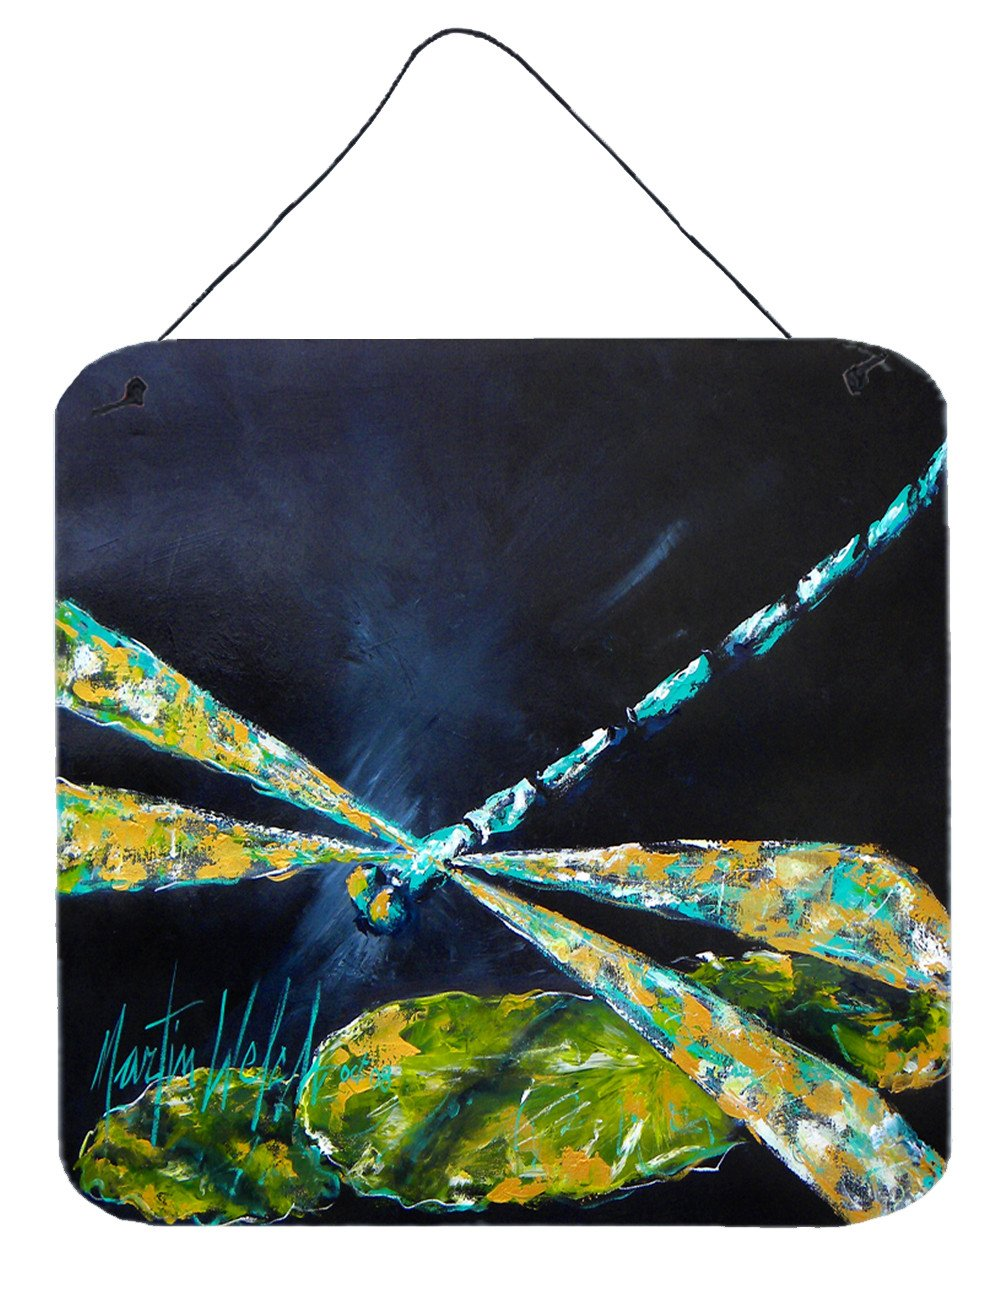 Insect - Dragonfly Night Flight Dark Blue Wall or Door Hanging Prints by Caroline's Treasures